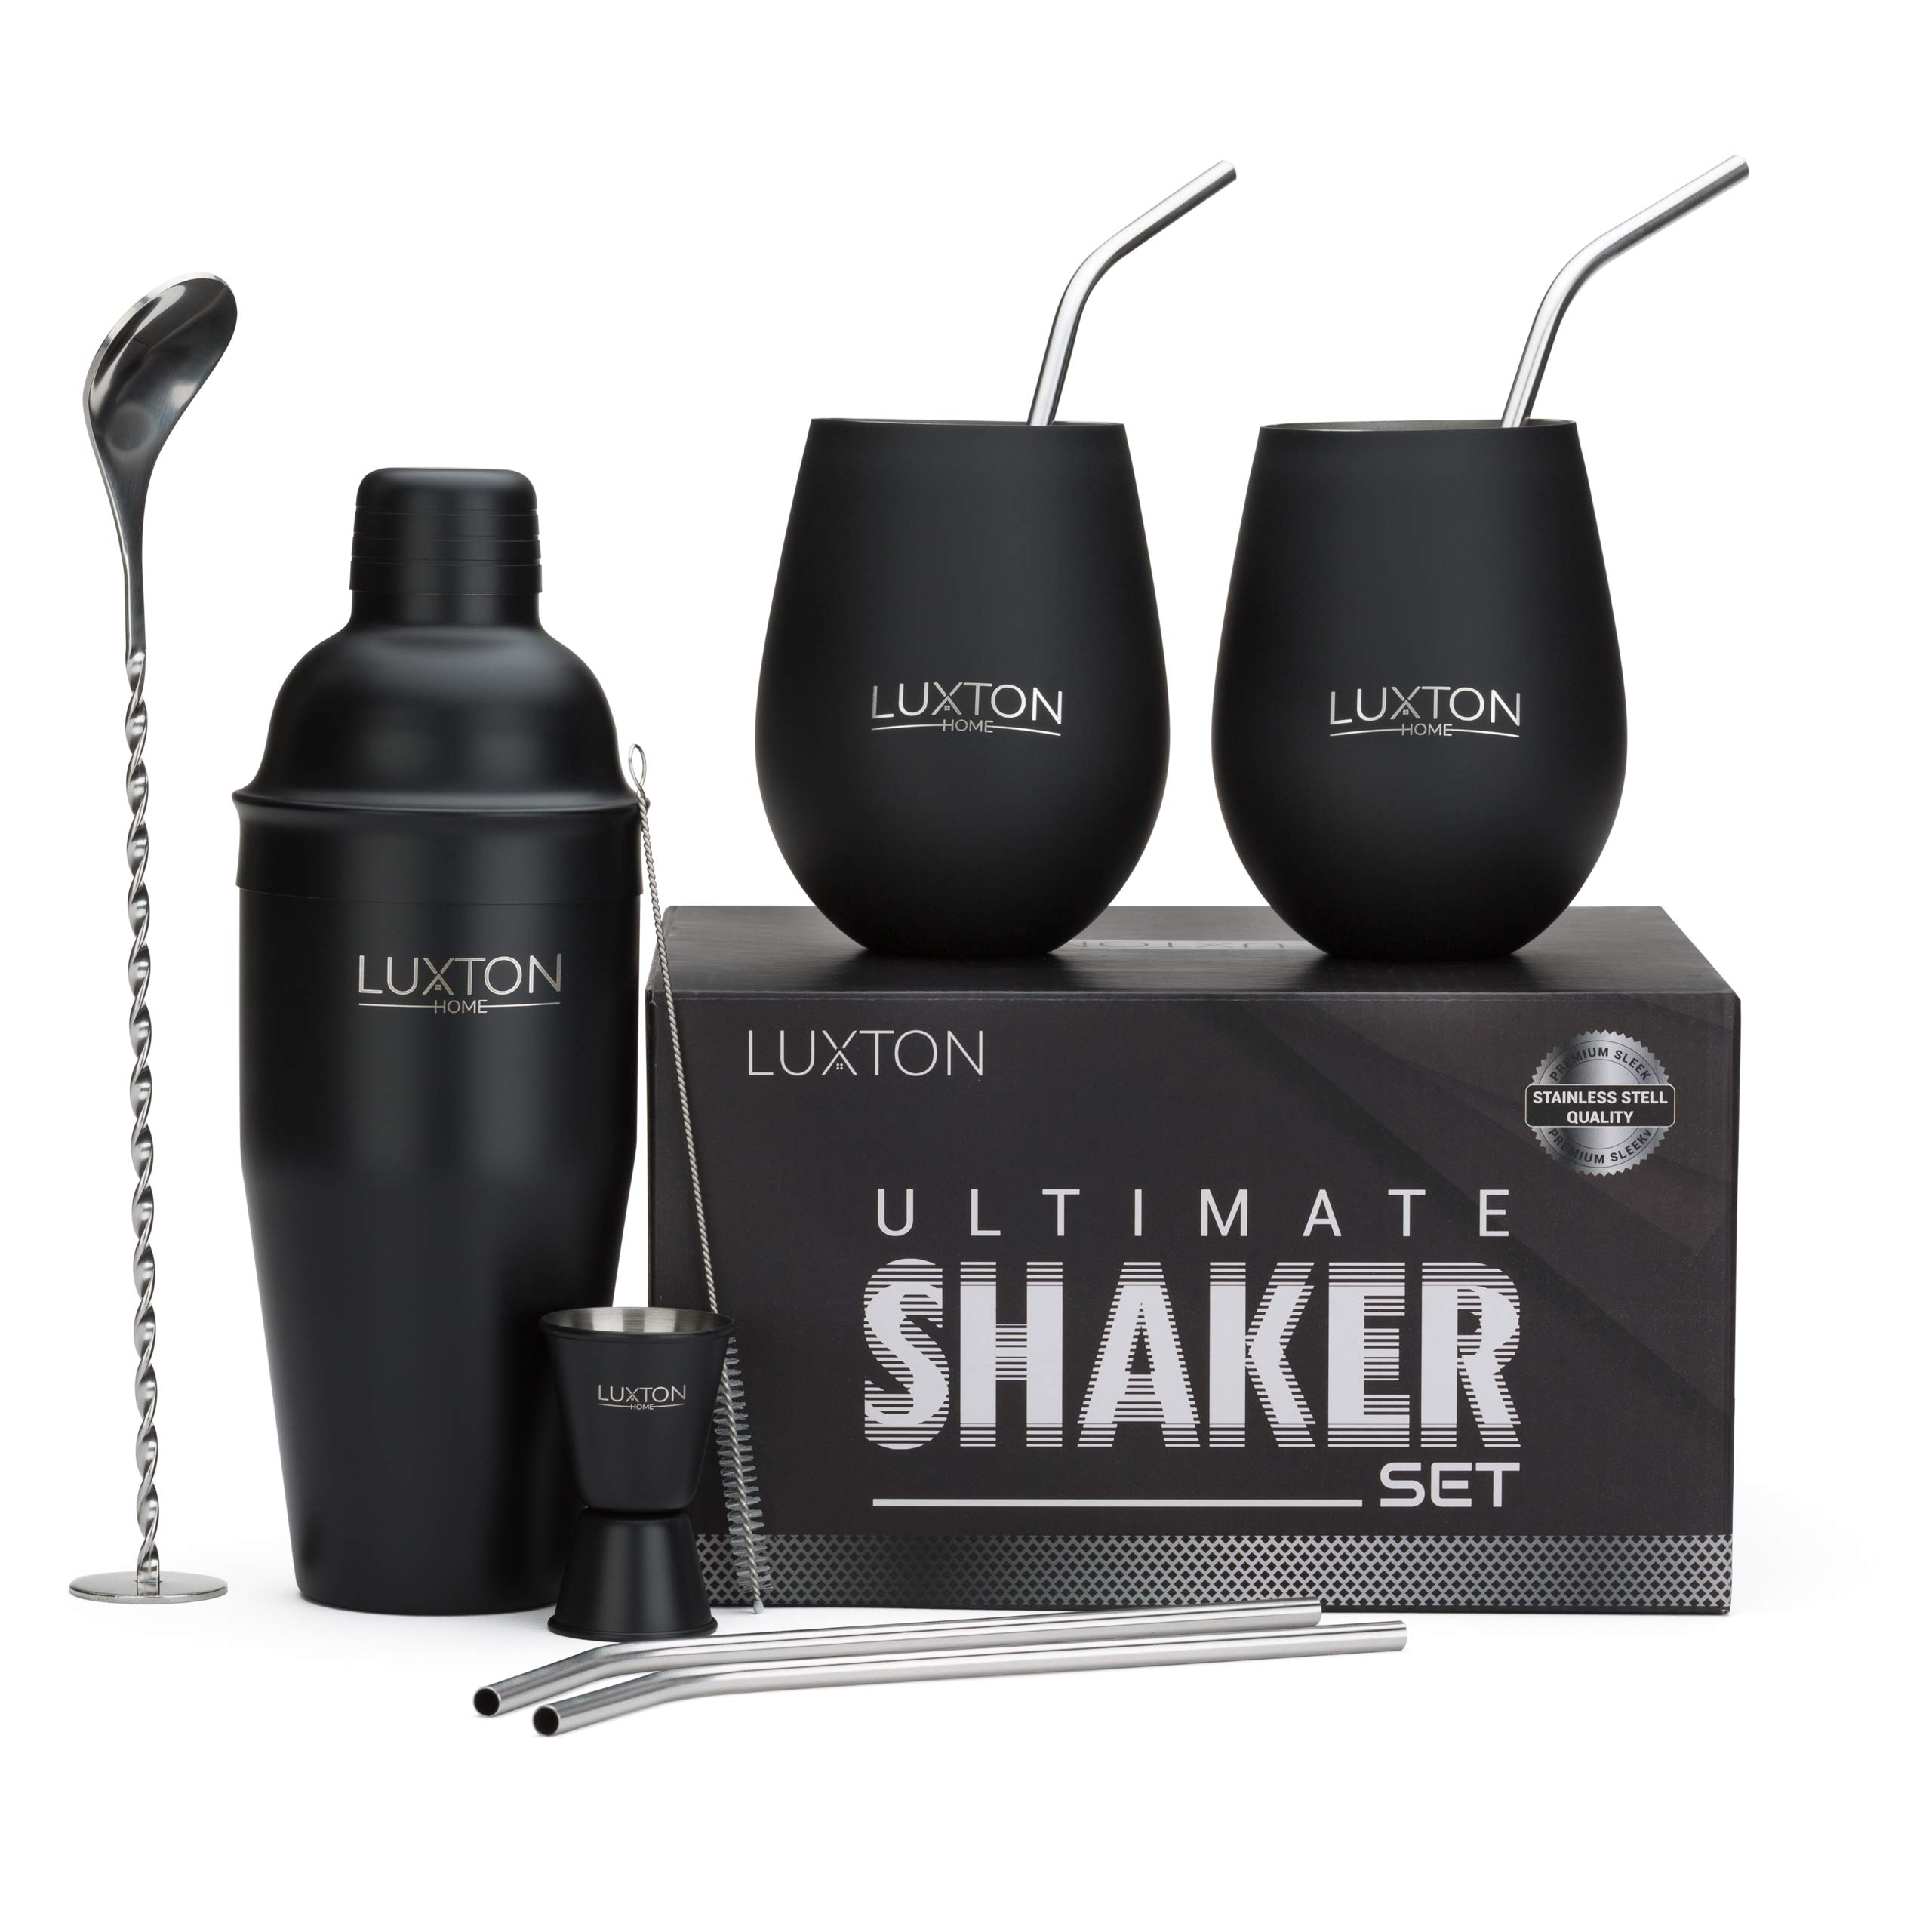 Luxton Home Ultimate Cocktail Shaker Set Matte Black - Plus 2 Cups & 4 Straws by Luxton Home